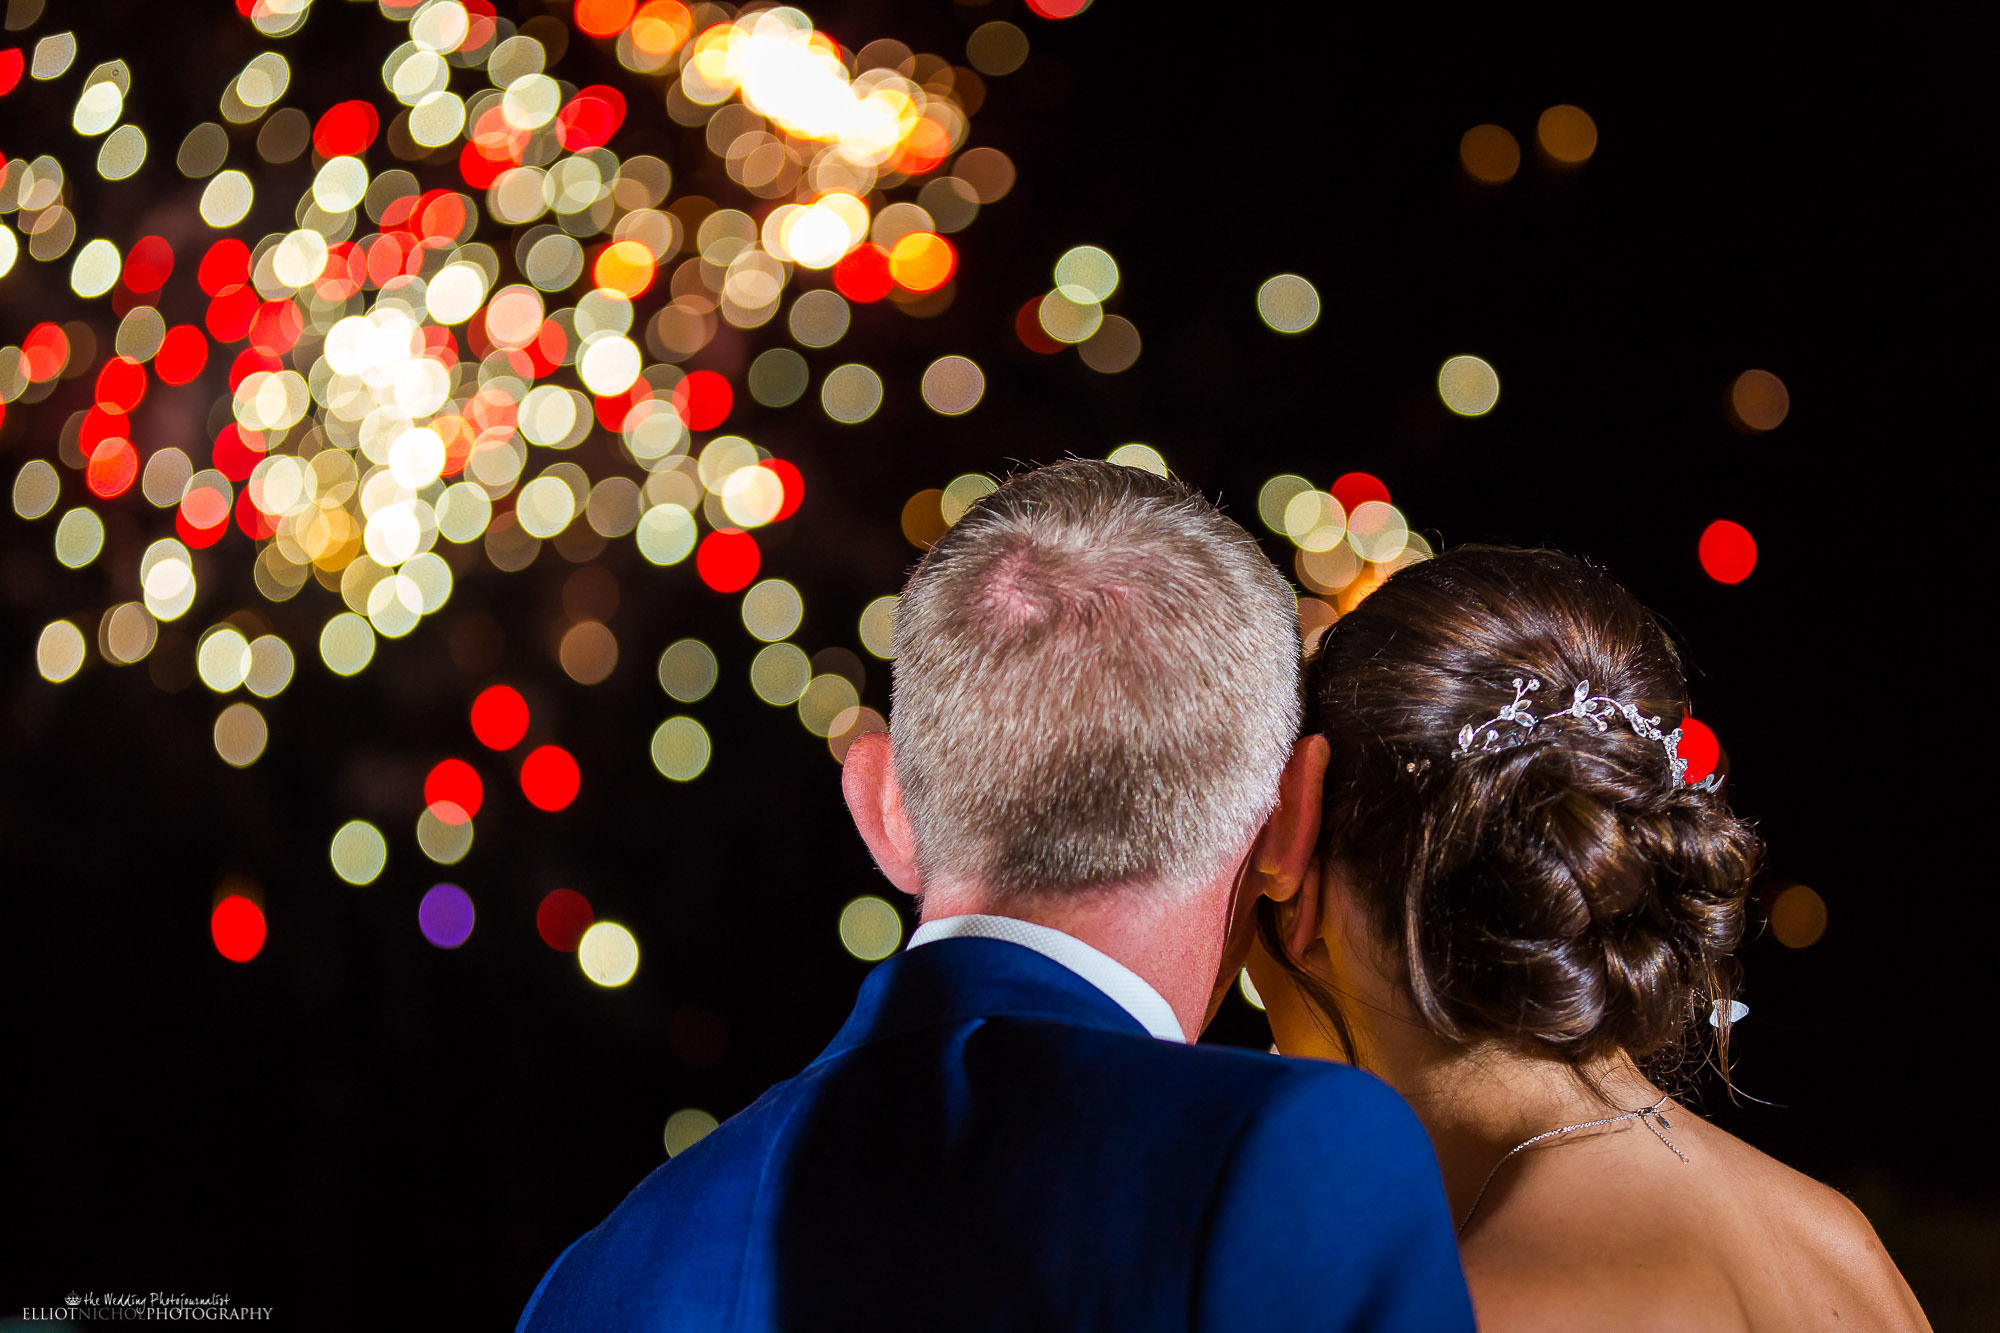 bride-groom-destination-wedding-fireworks-photographer